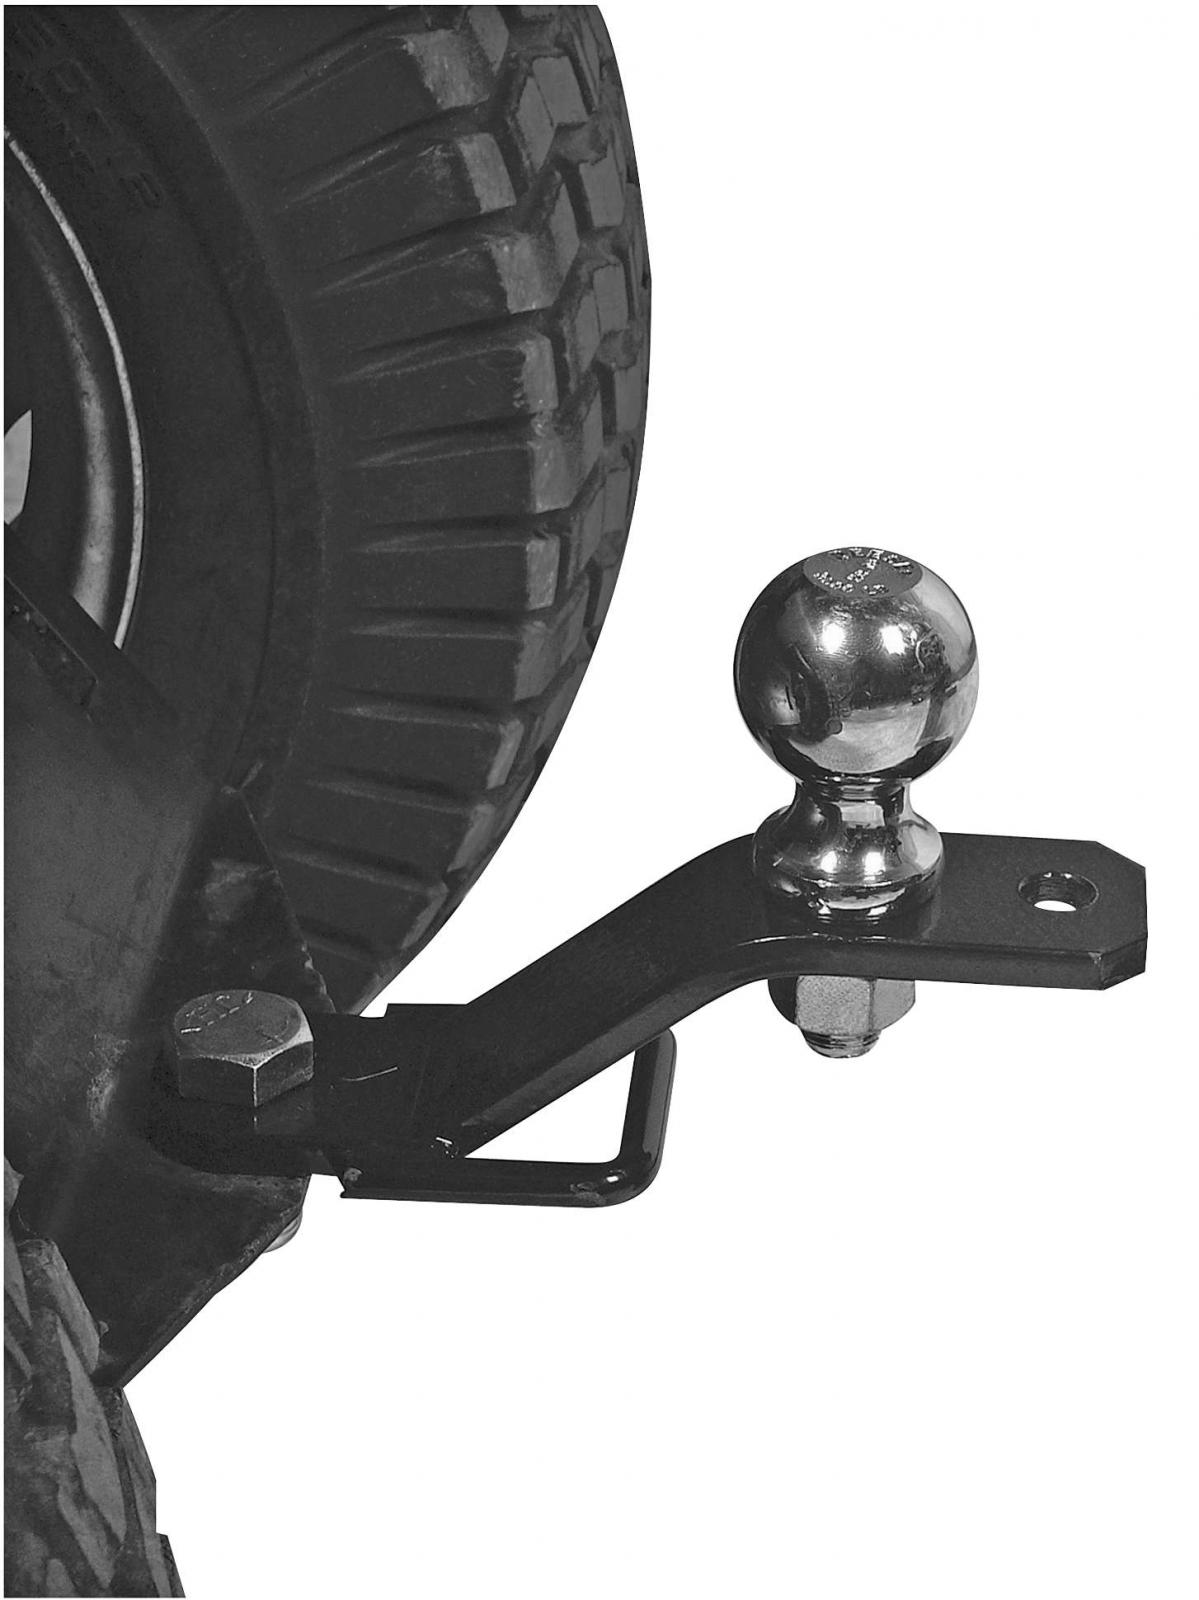 2 Ball Hitch >> QuadBoss Offers a Full Line of Towing Products | ATV Illustrated